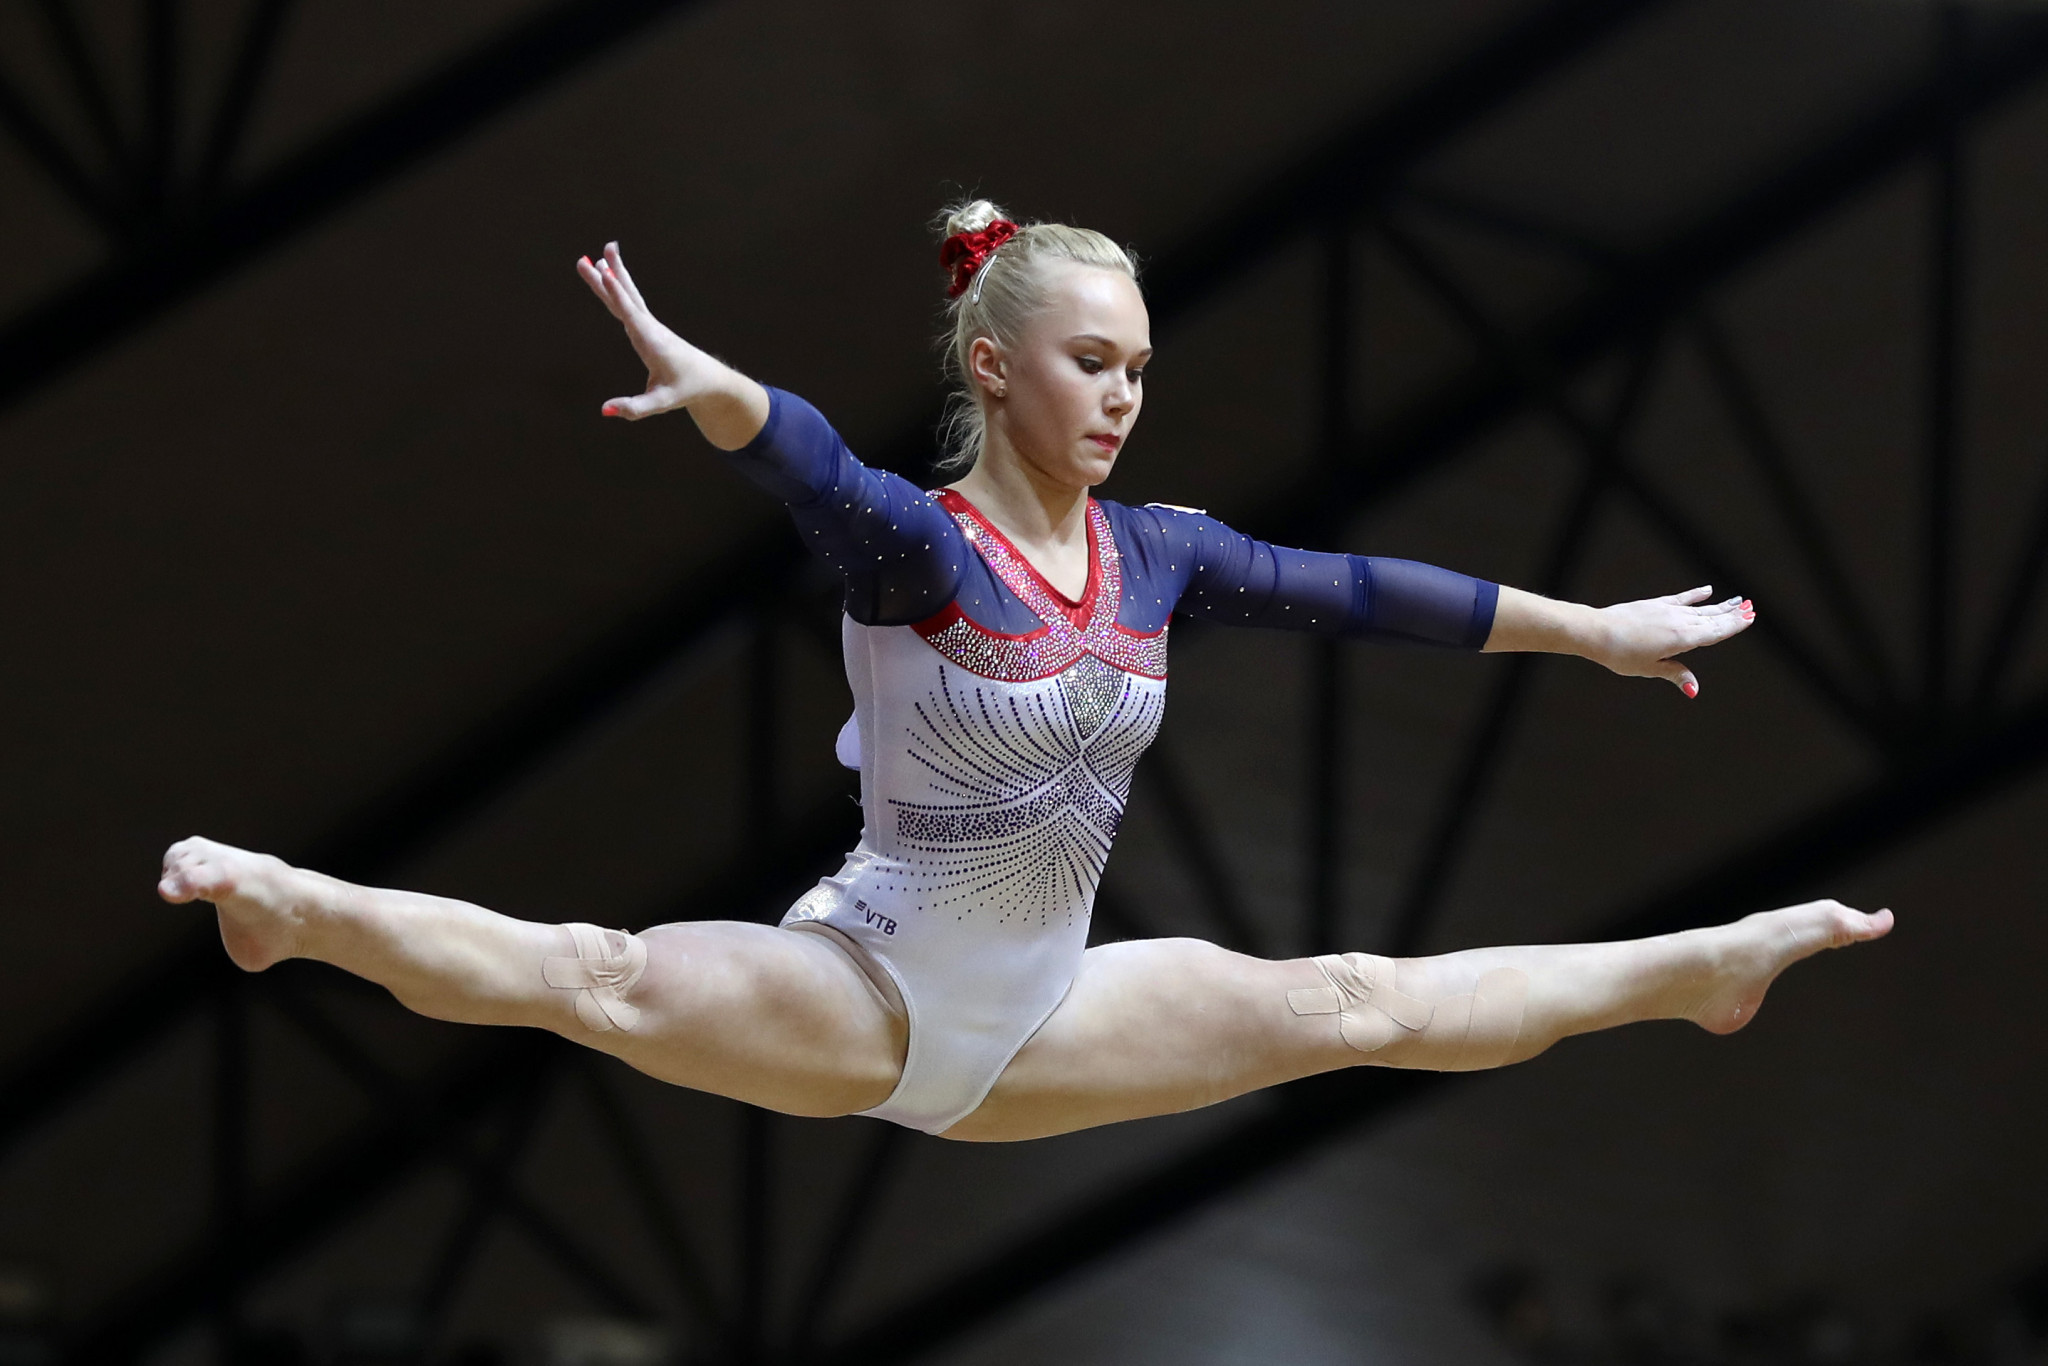 Russia's Melnikova heads list of women's all-around qualifiers at European Artistic Gymnastics Individual Championships